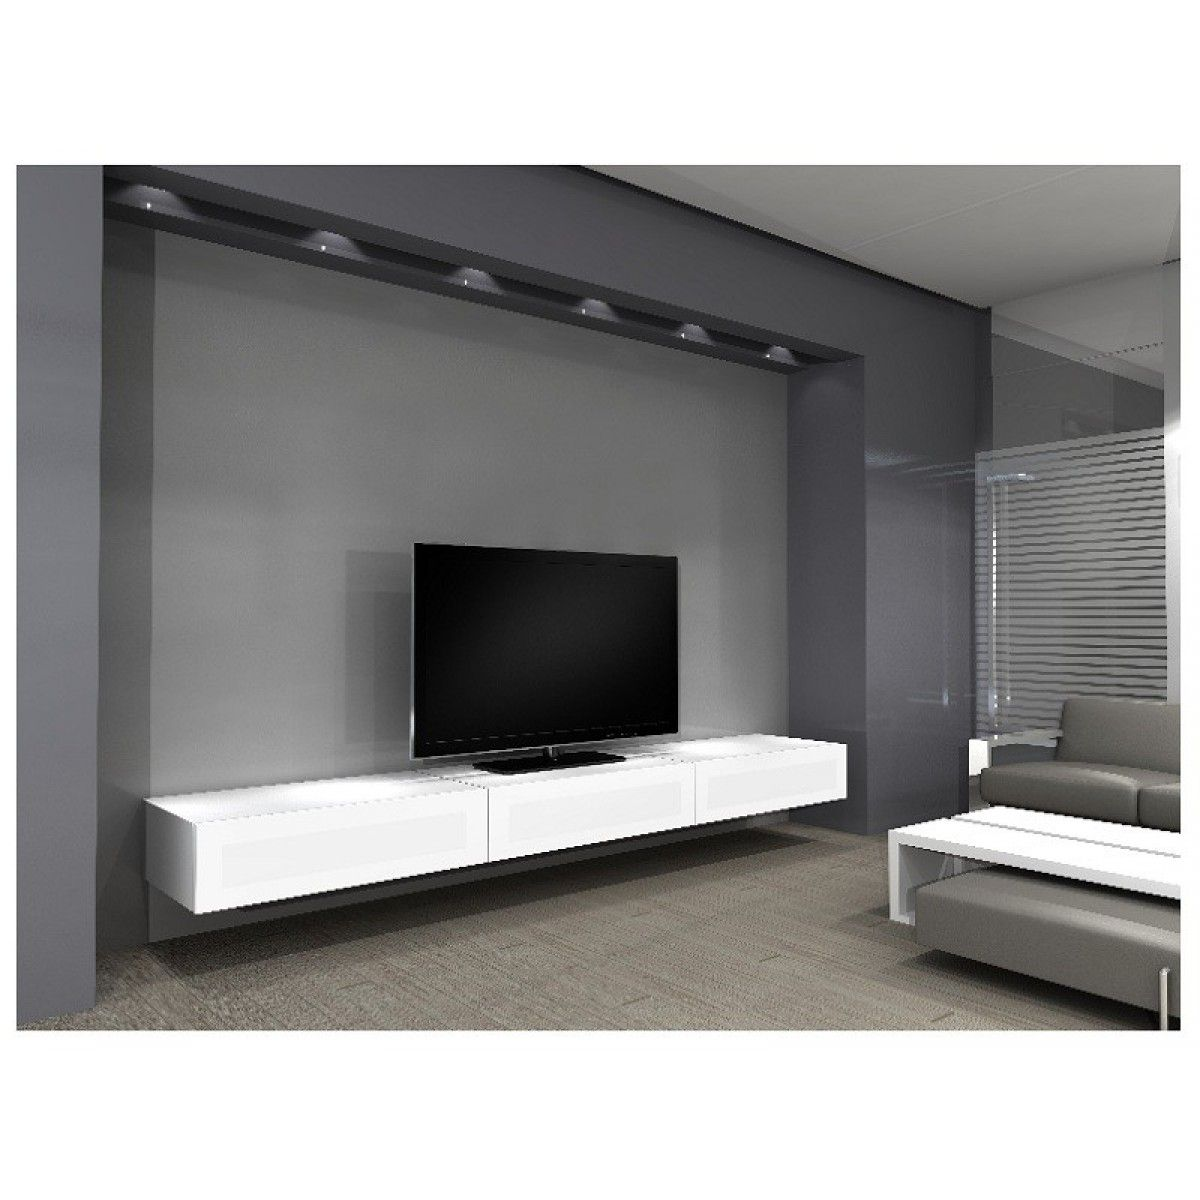 Grand Meuble Tv Design Pin De Asia Orzelek En ściana Tv En 2019 Tv Cabinets Tv